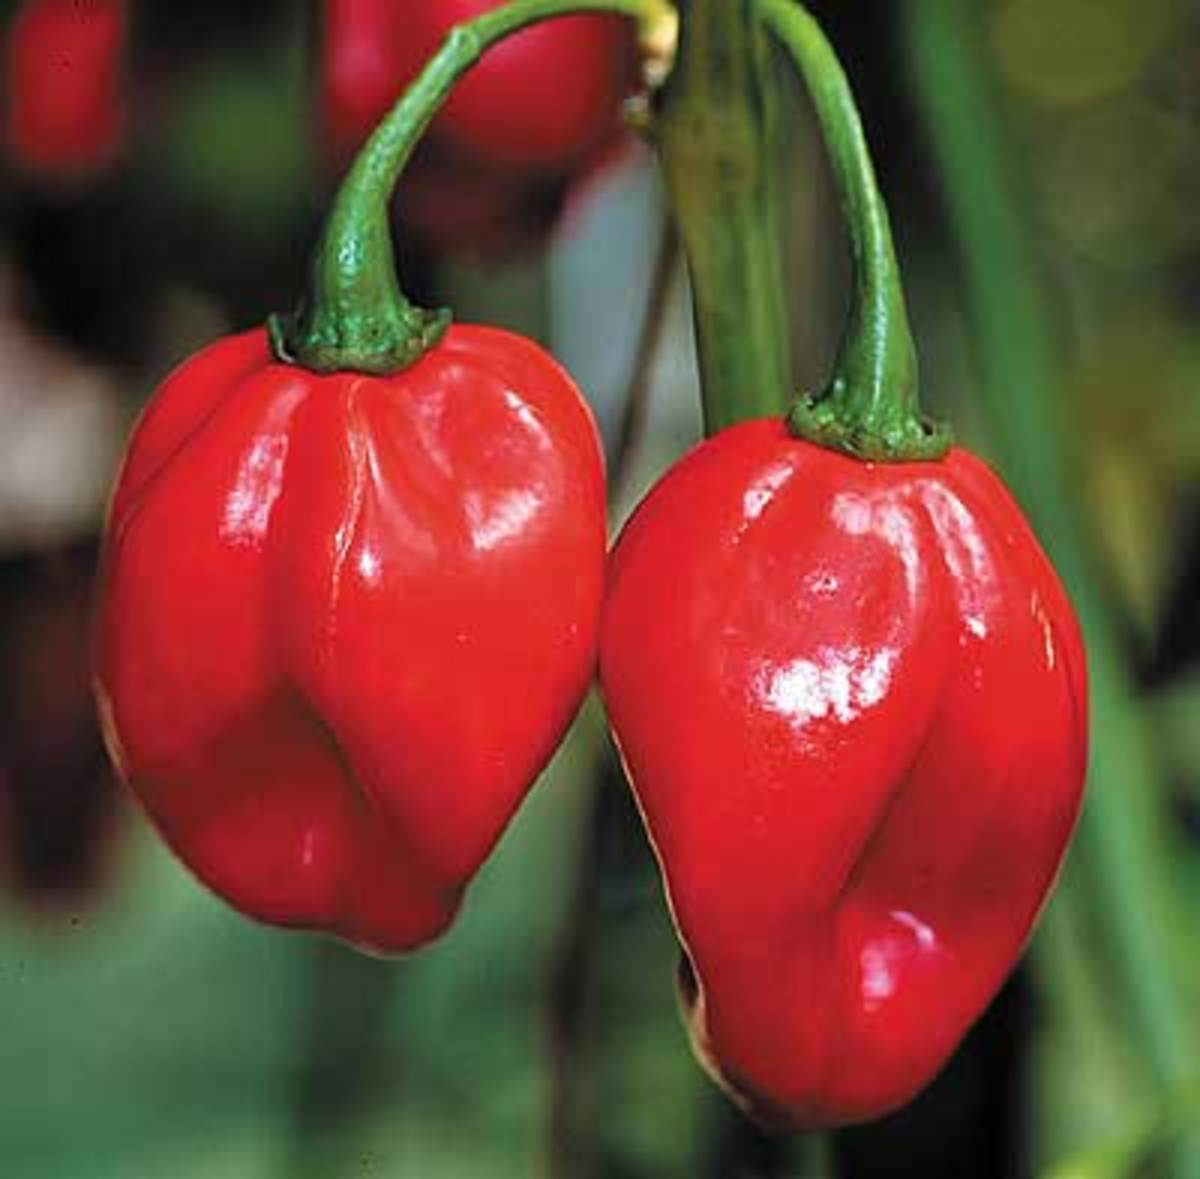 Scotch Bonnet - A Capsicum very similar to Habanero, but later in maturity with fruit that is not quite as long. Tall, vigorous plants bear peppers that begin as green, but mature to red. Fruity aroma and same blistering heat as the Habanero.